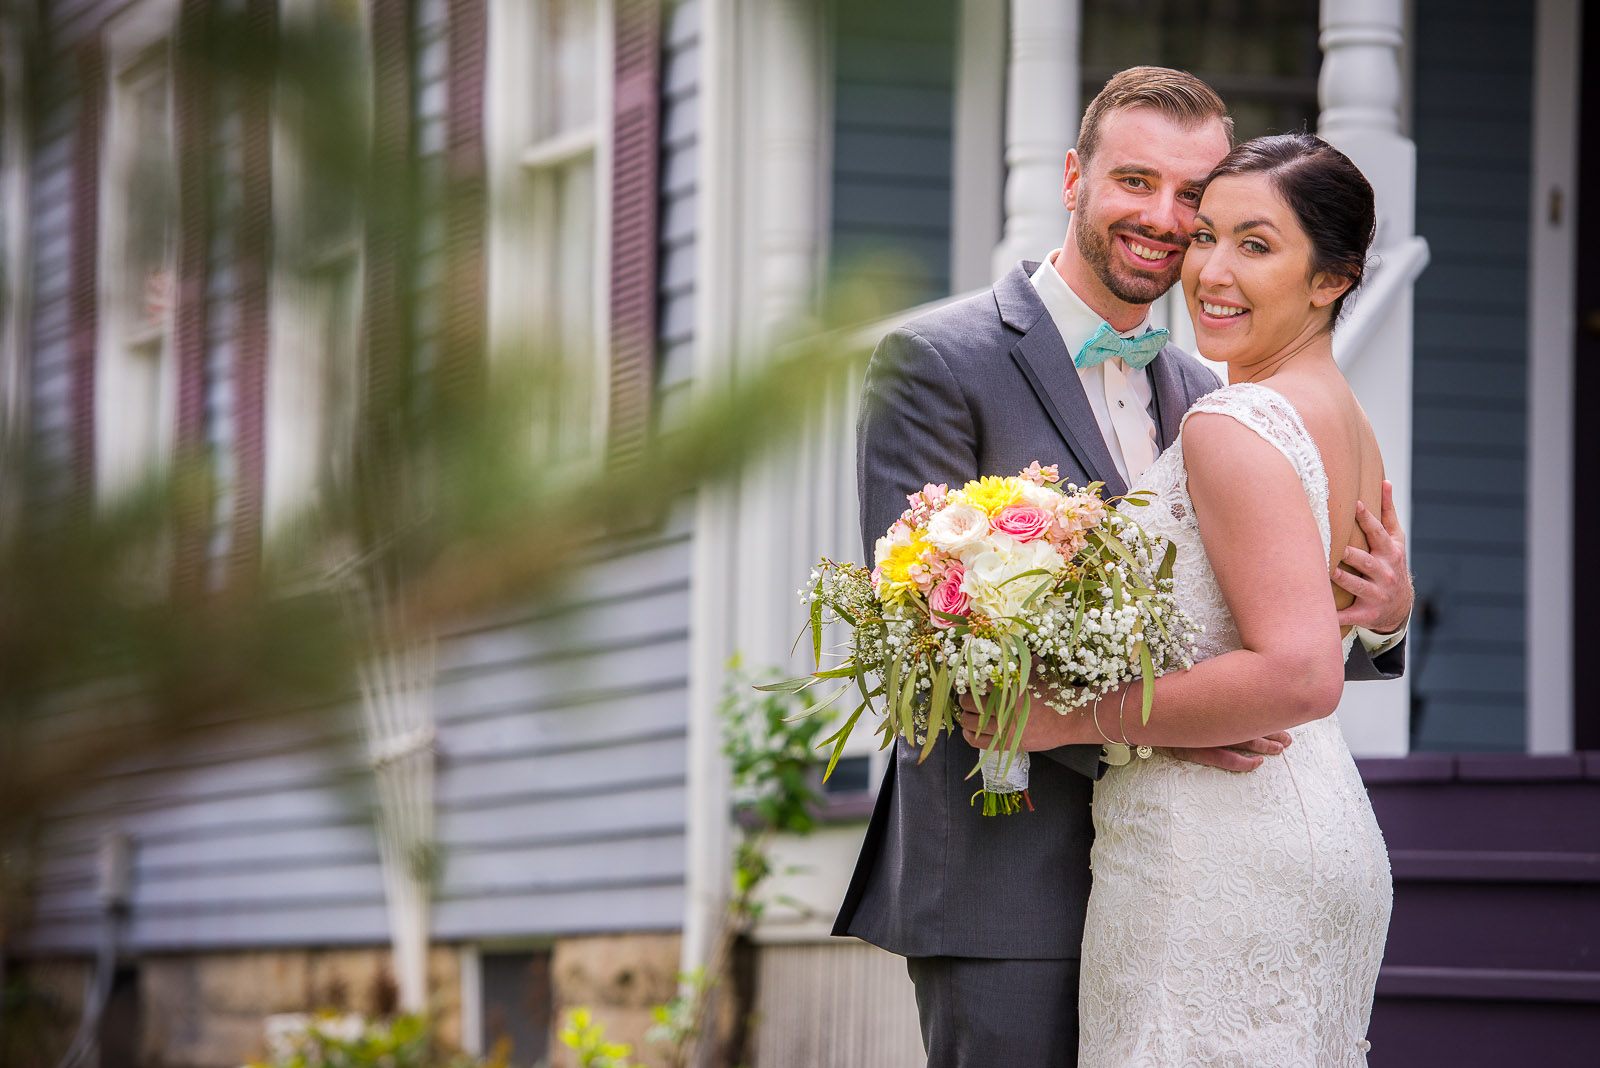 Eric_and_Christy_Photography_Blog_Katie_Travis_Wedding-9